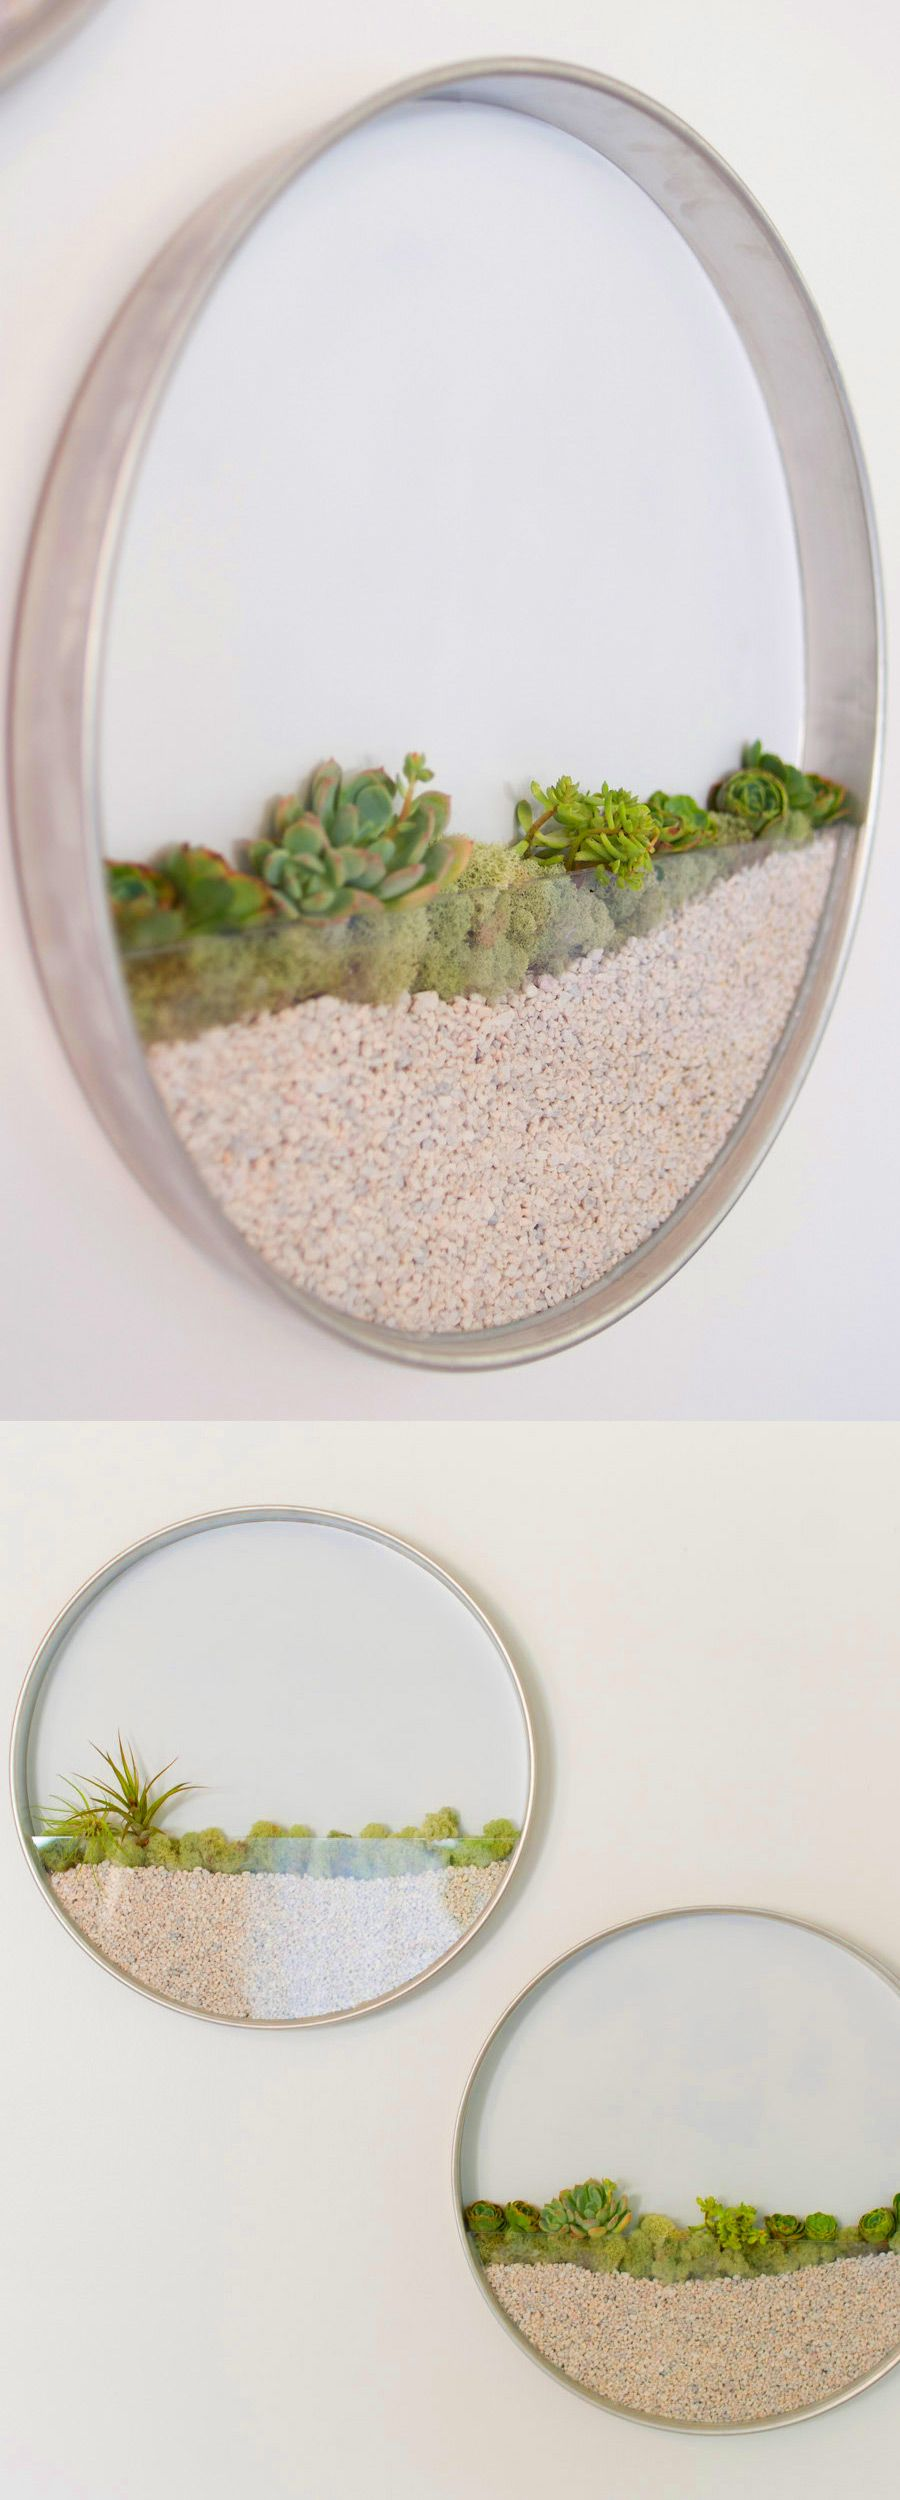 Circular Framed Planters Add Living Art To Your Walls Home Space - Cool diy wall planter